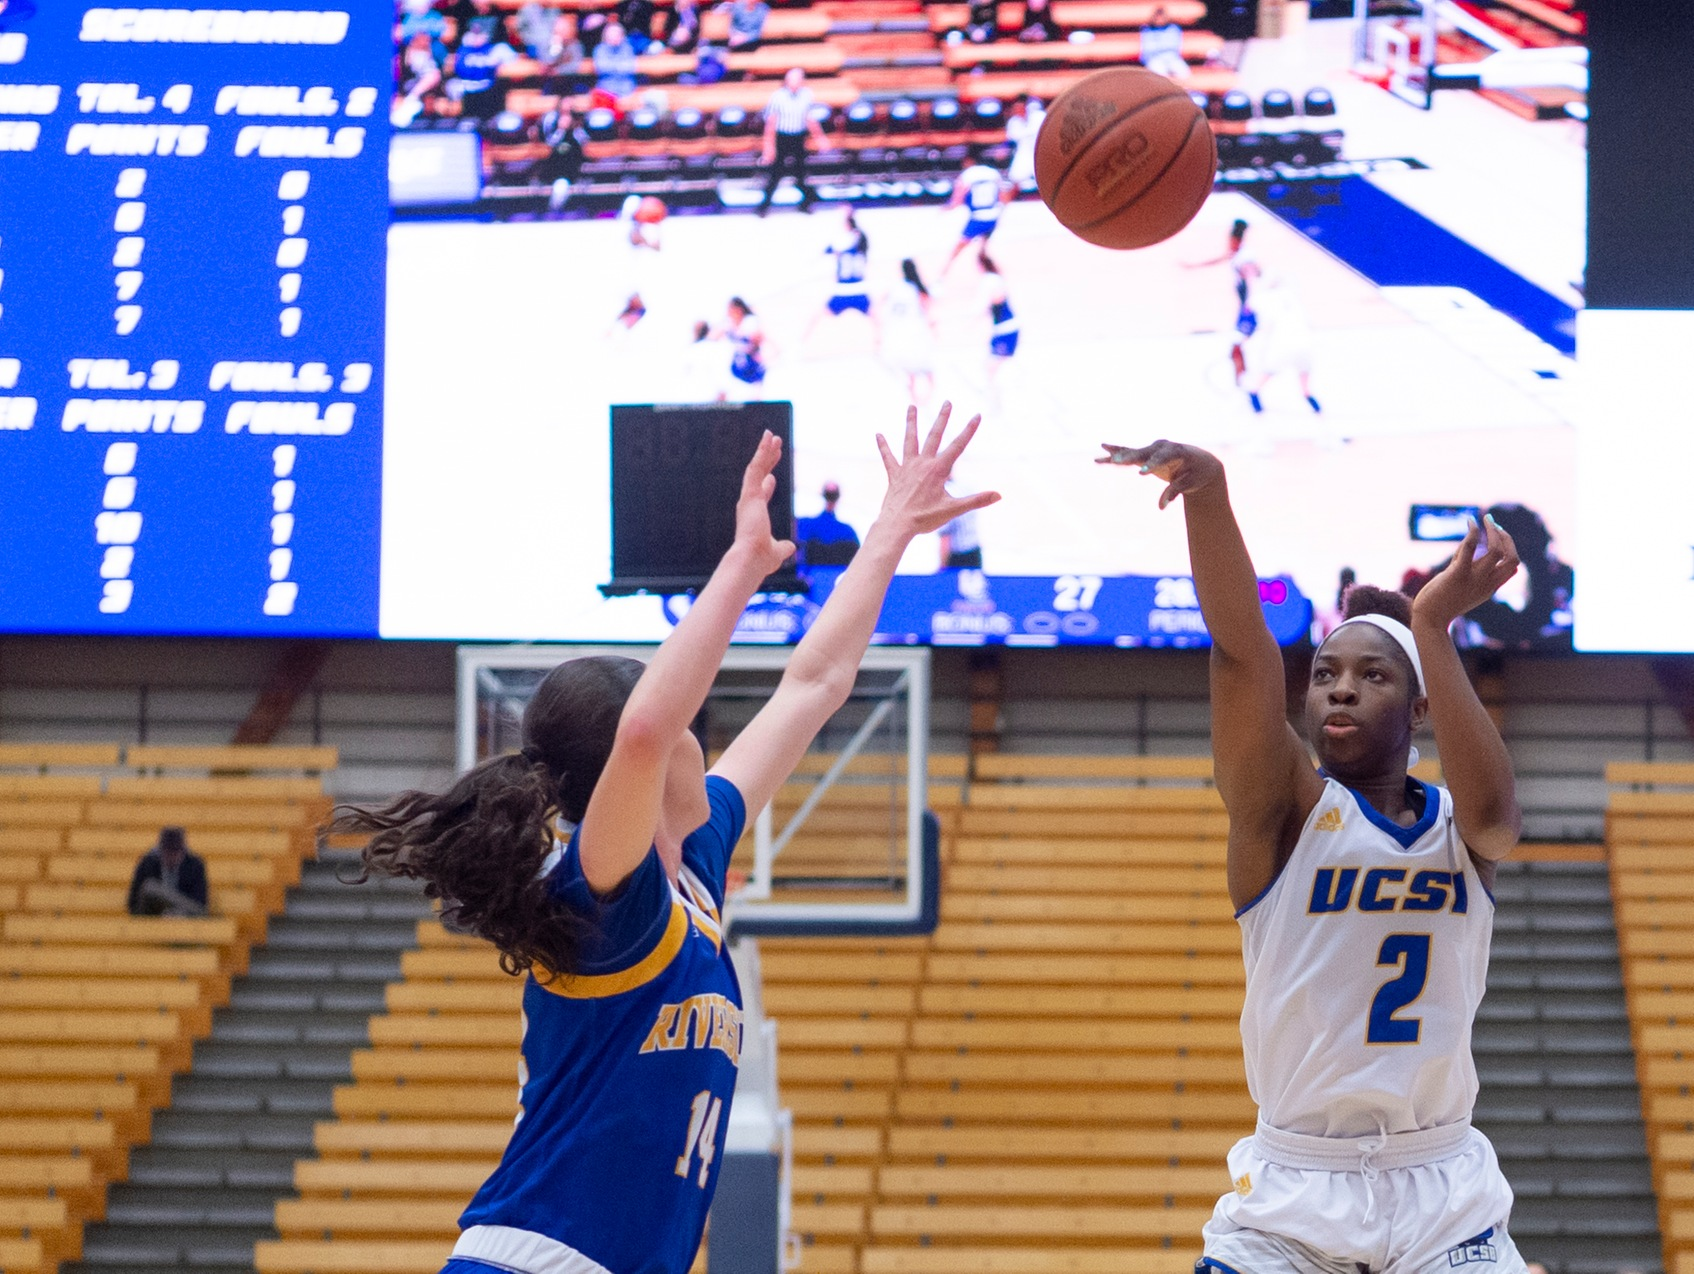 UCSB Closes Out Regular Season at UC Davis on Saturday